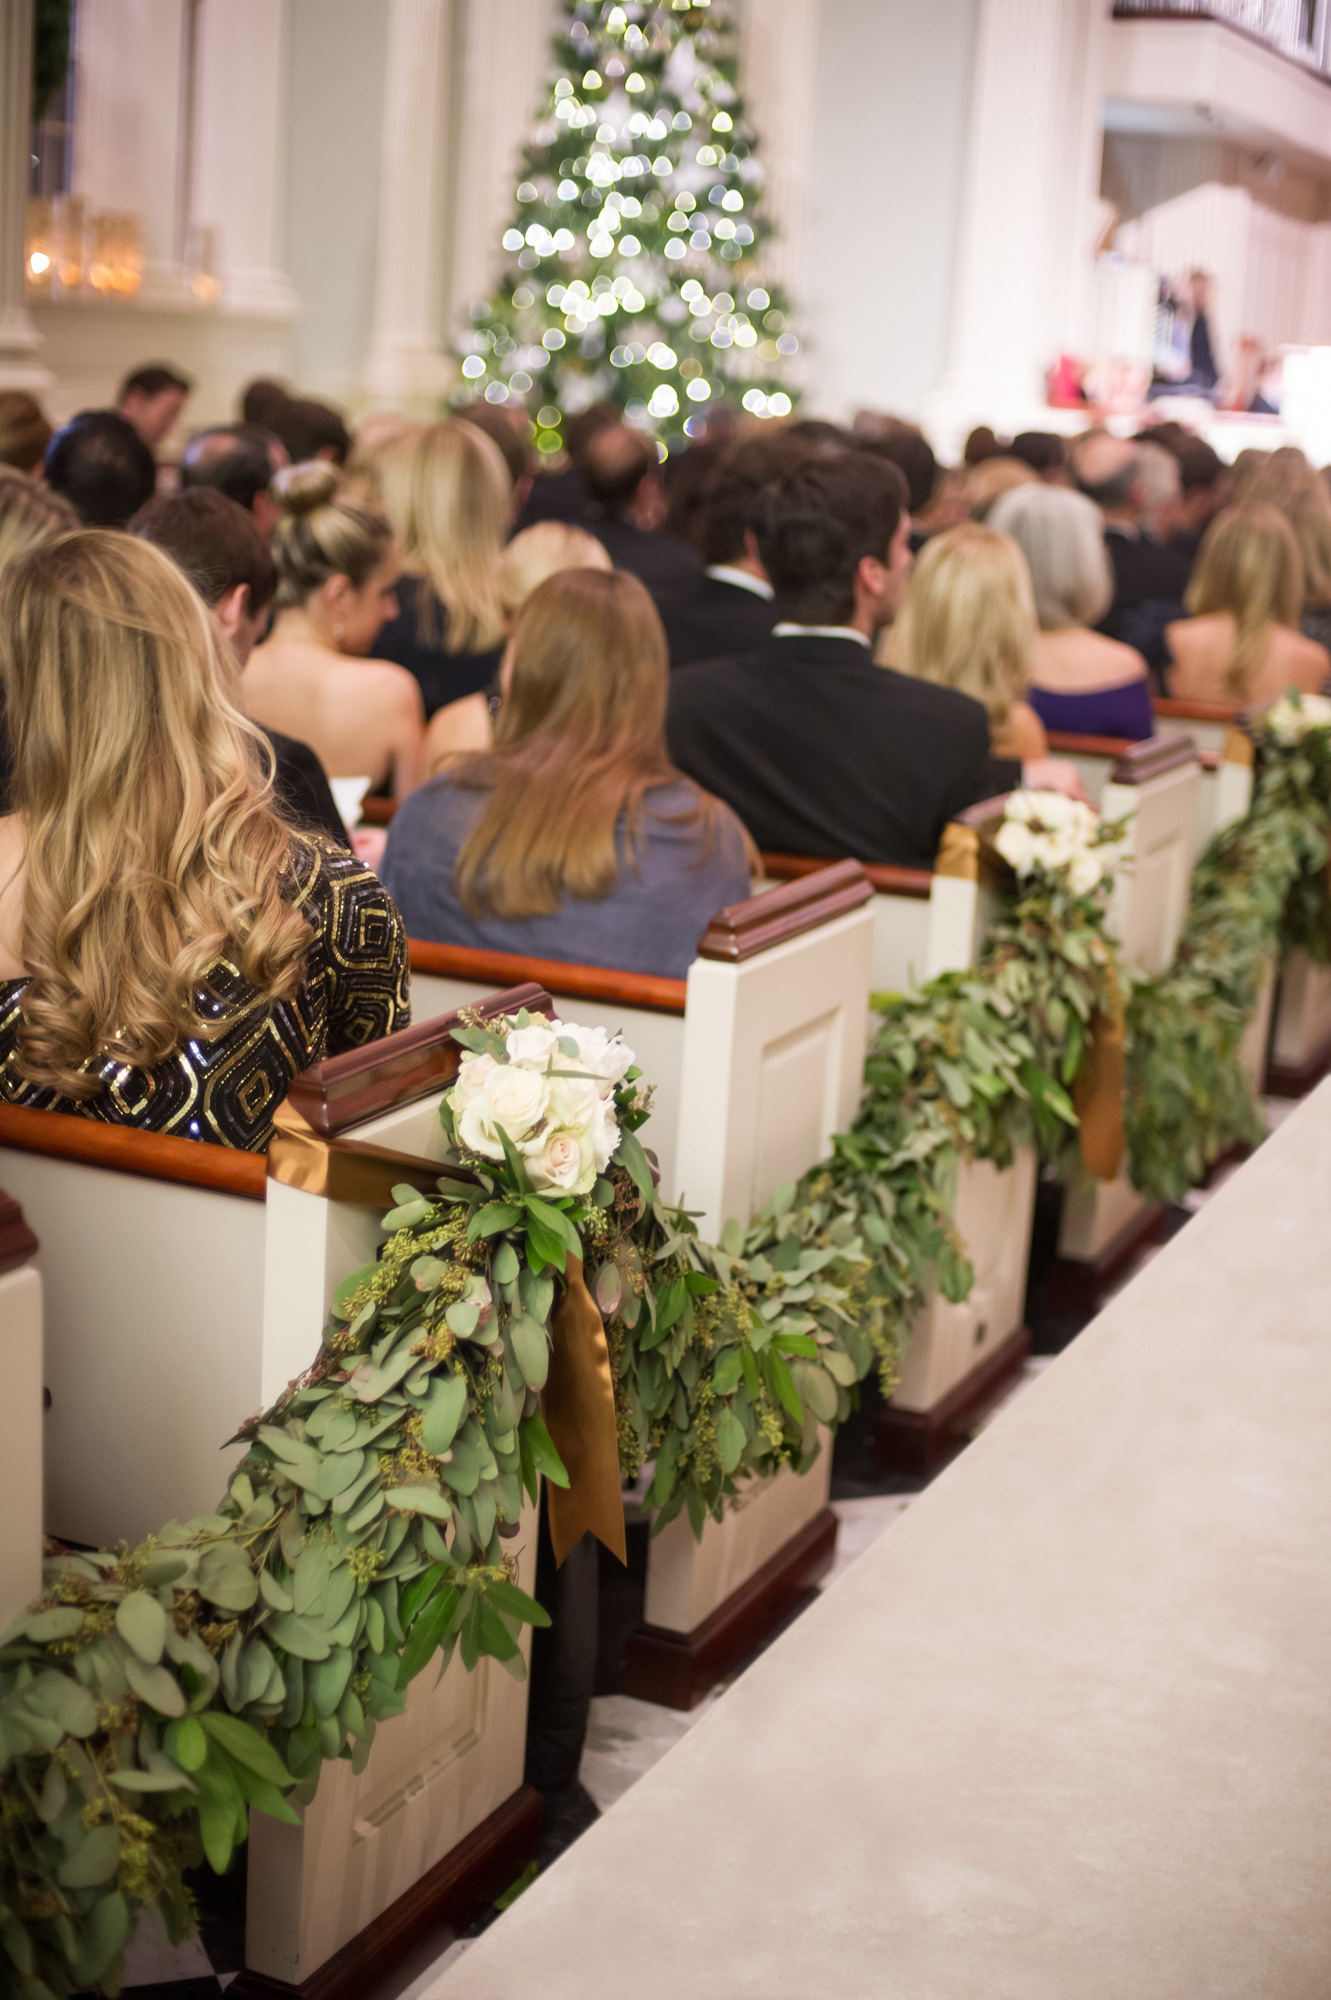 green garlands with white roses on church pews - Christmas Decorating Ideas For Church Sanctuary